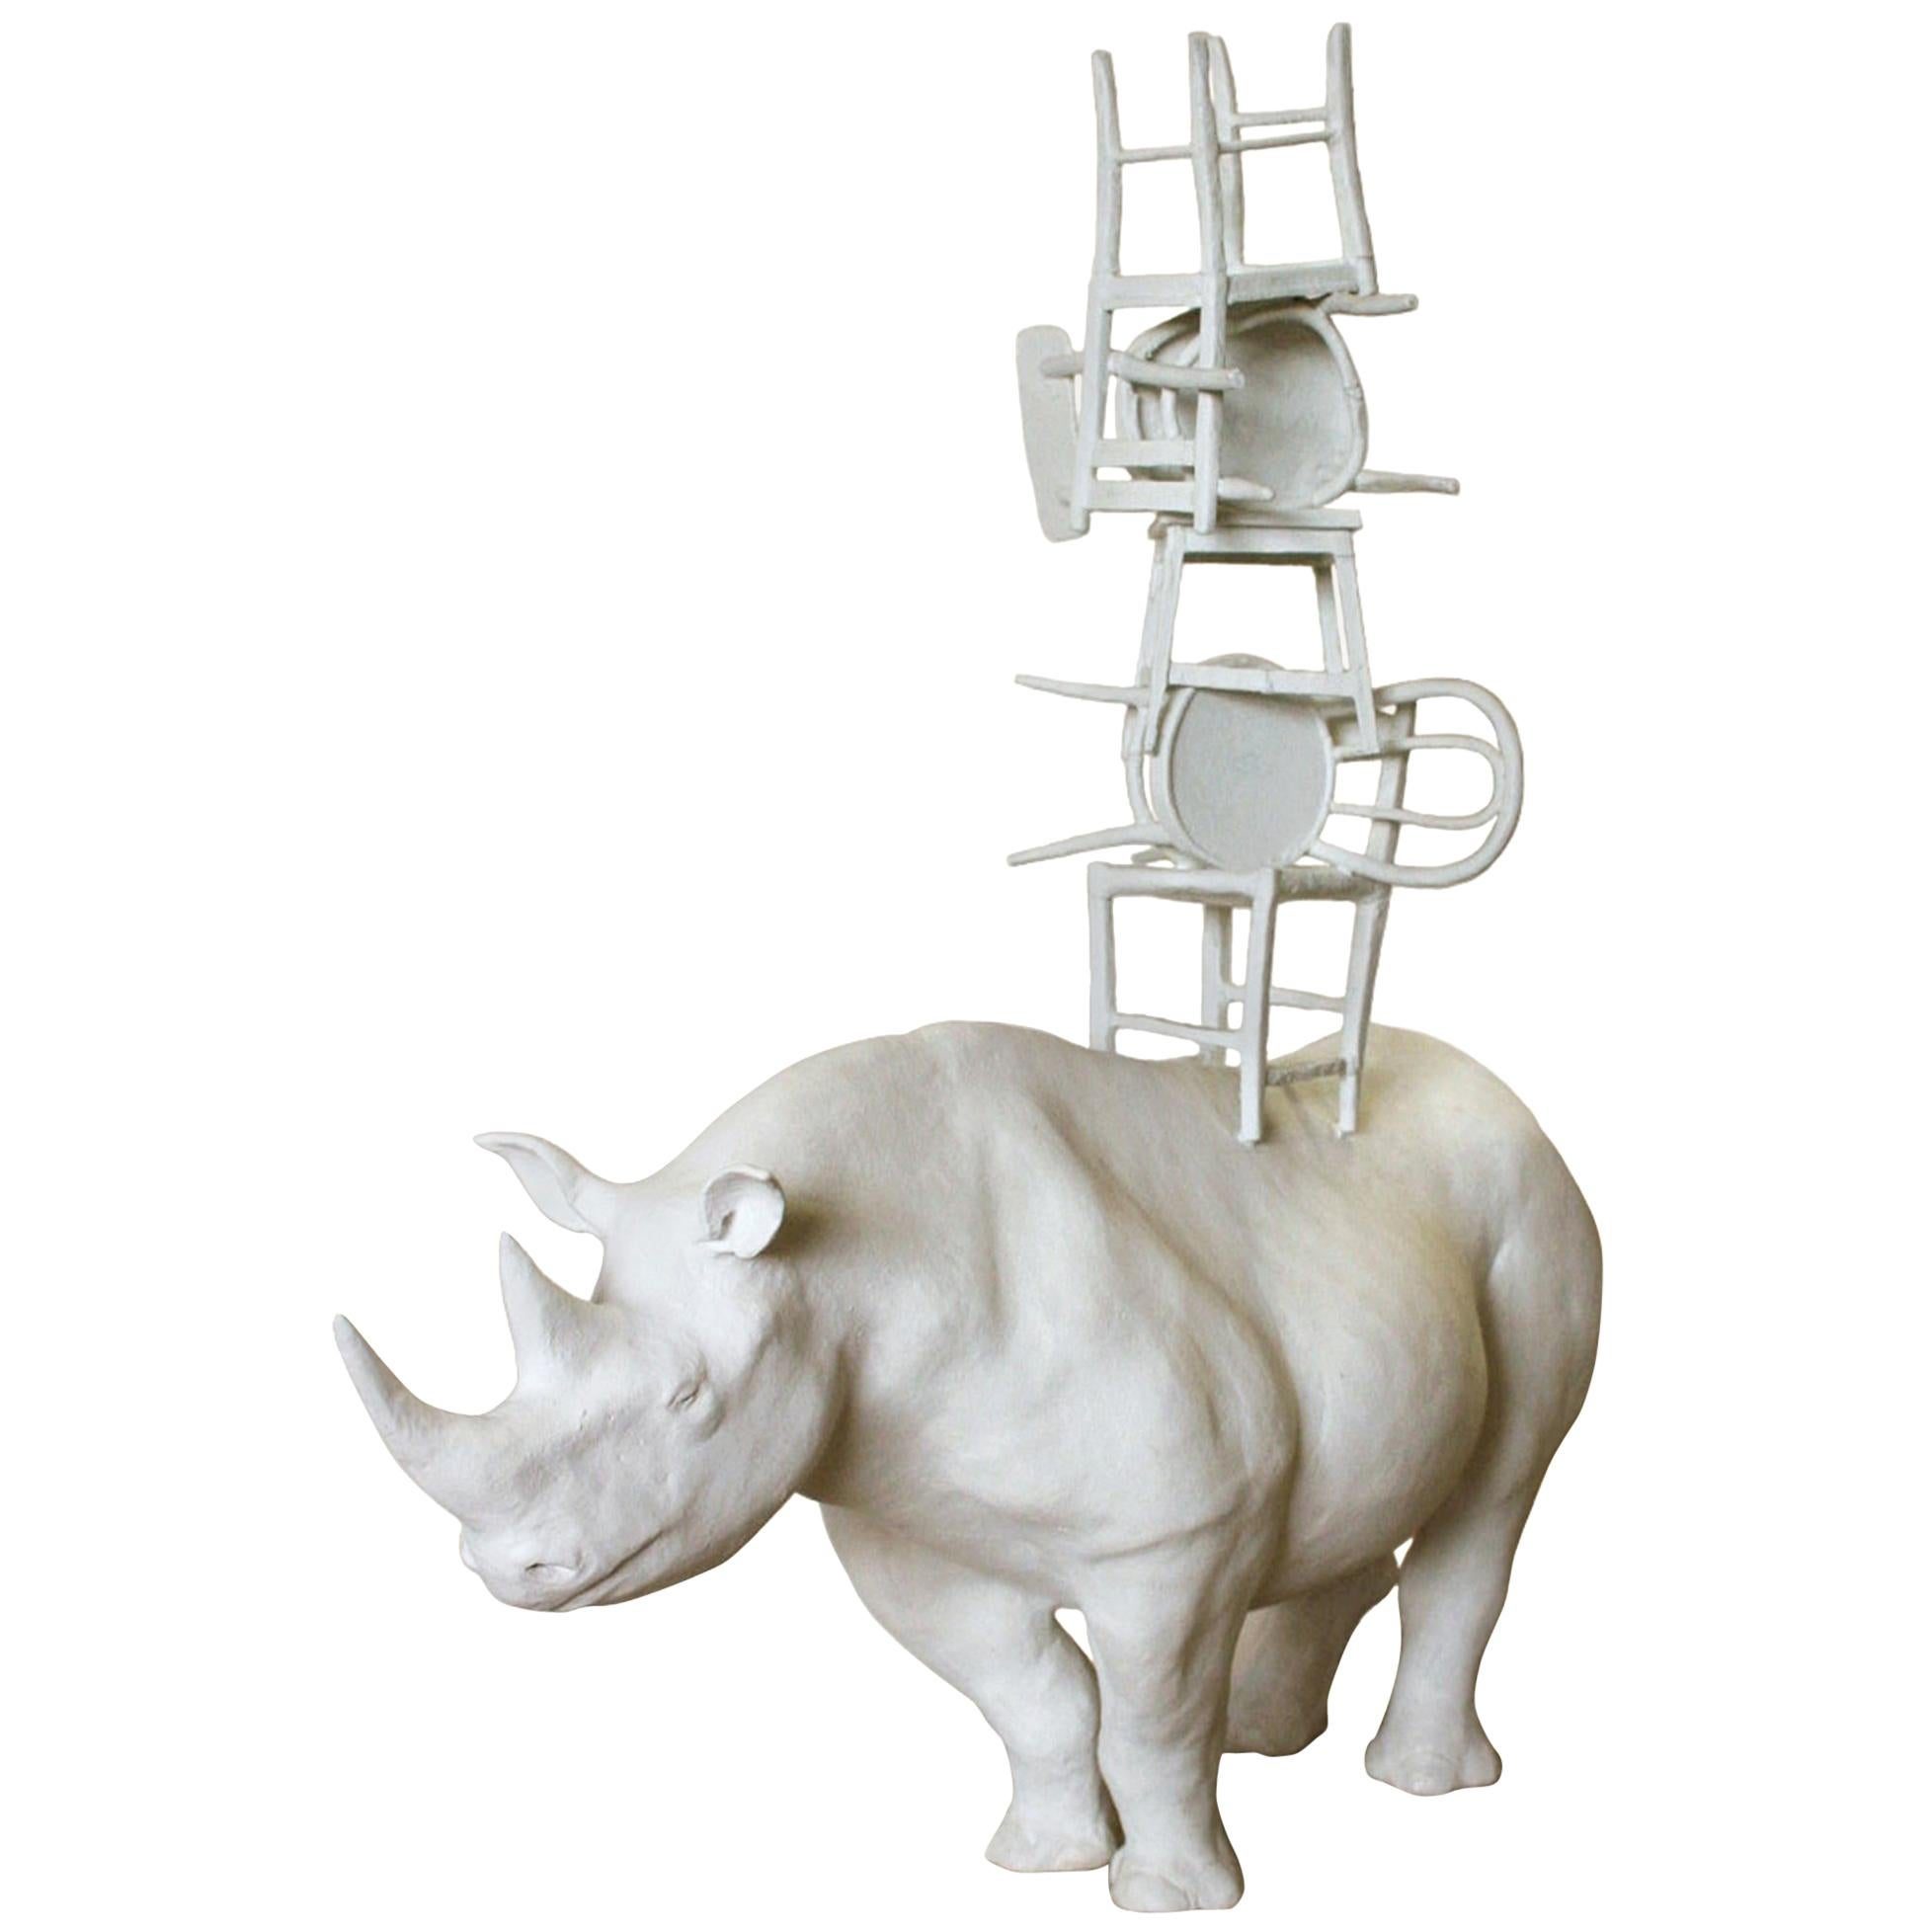 21st Century Rhino with Chairs Sculpture by Marcantonio, White Painted Bronze